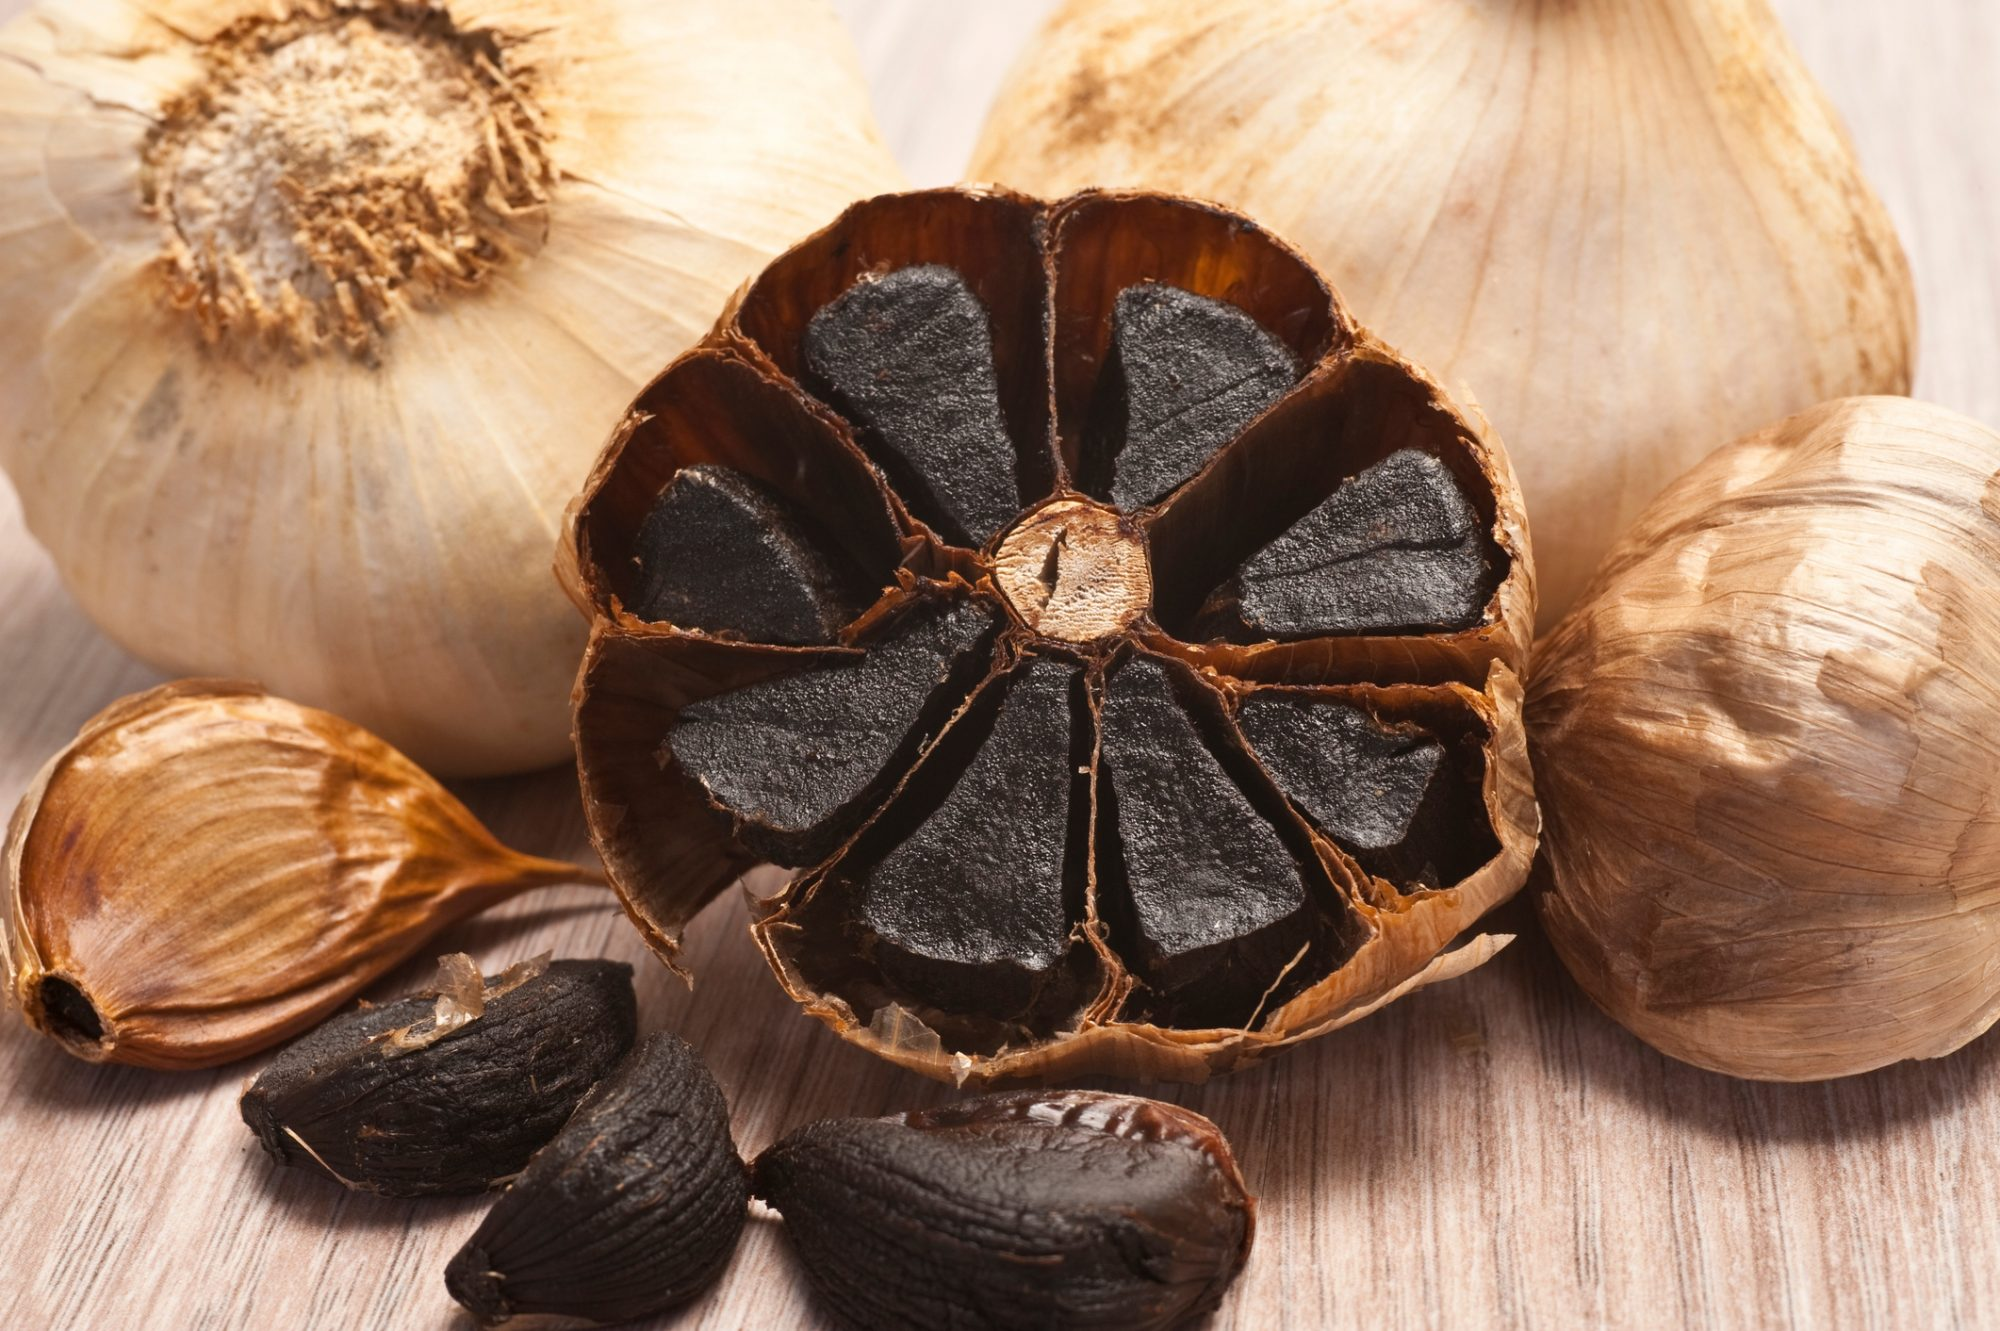 What Is Black Garlic and How Do You Use It?